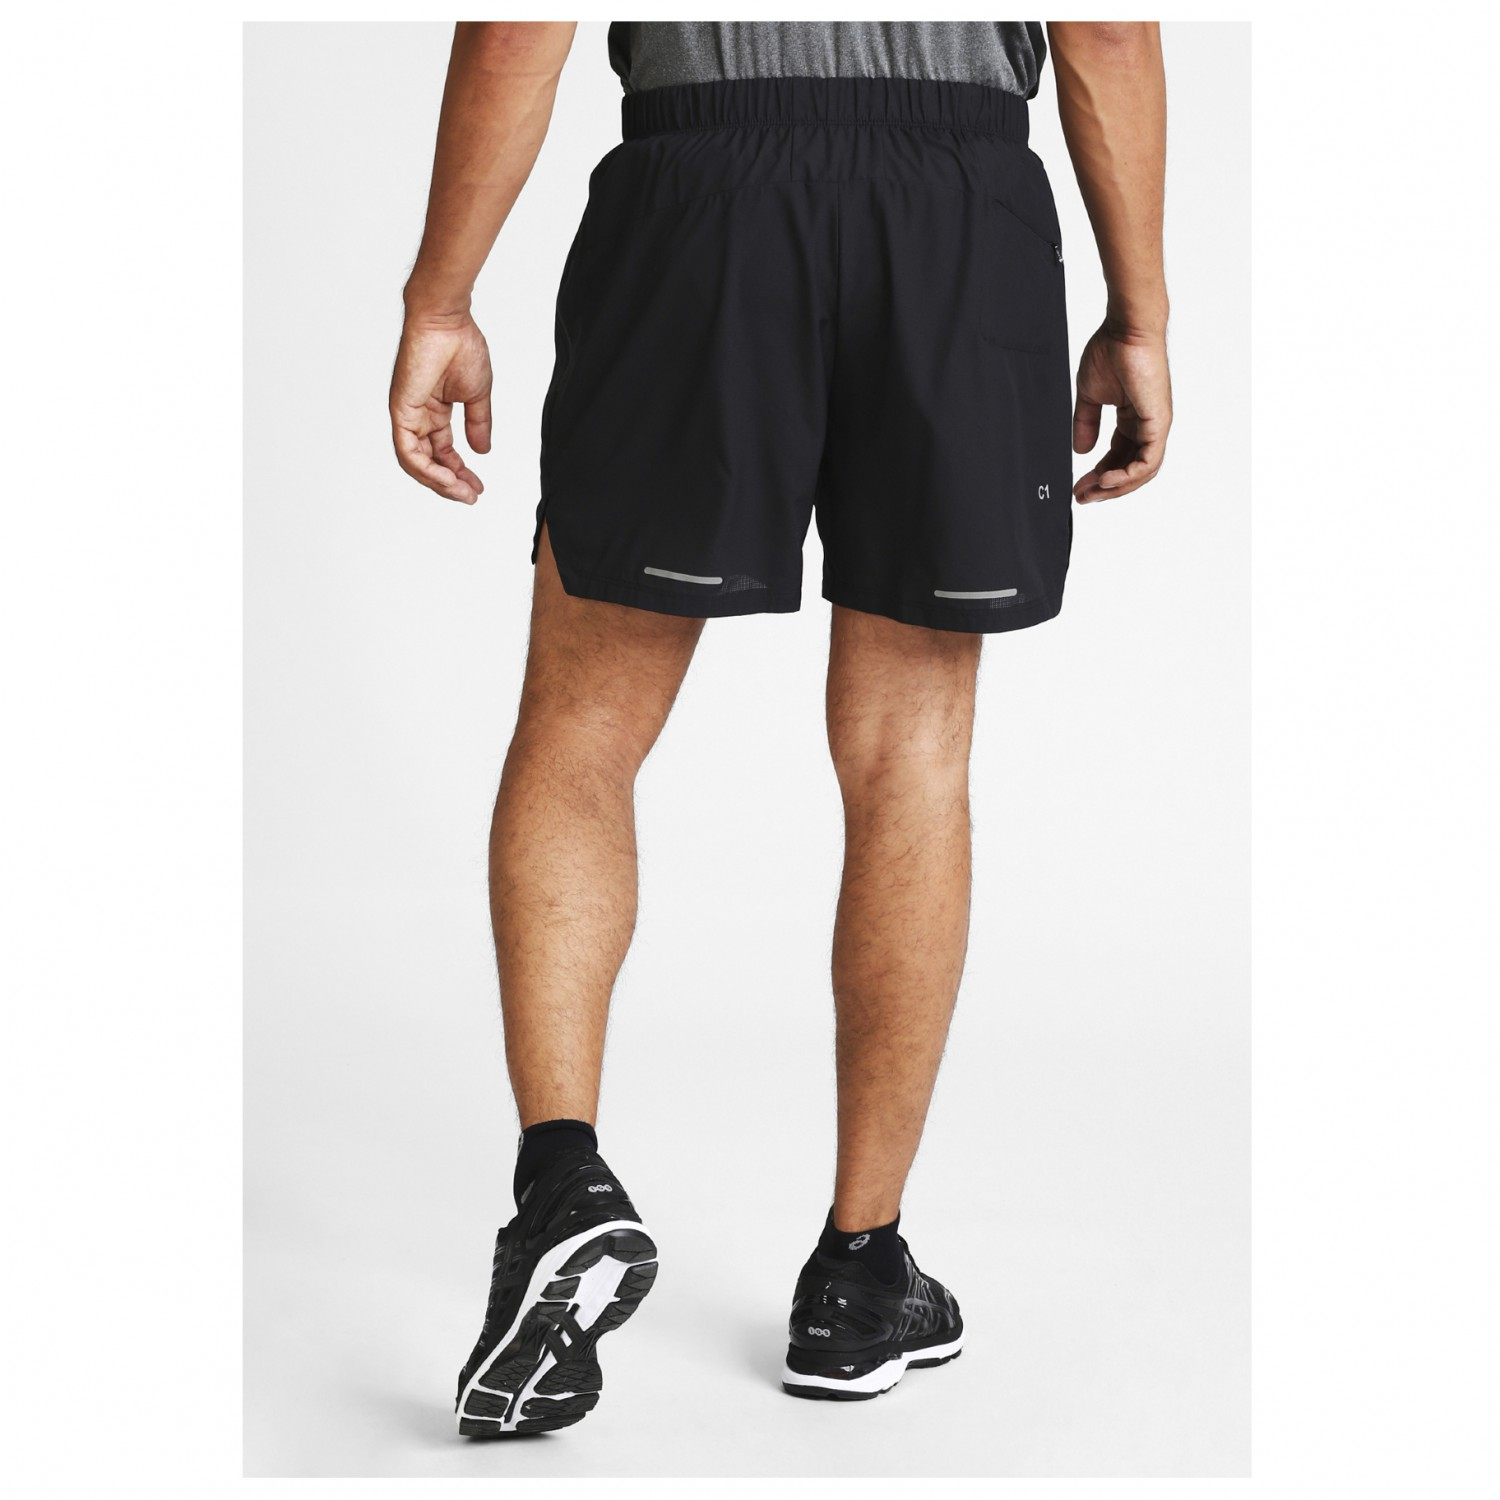 67c0a236ca Asics - Cool 2-N-1 5In Short - Running shorts - Illusion Blue | S